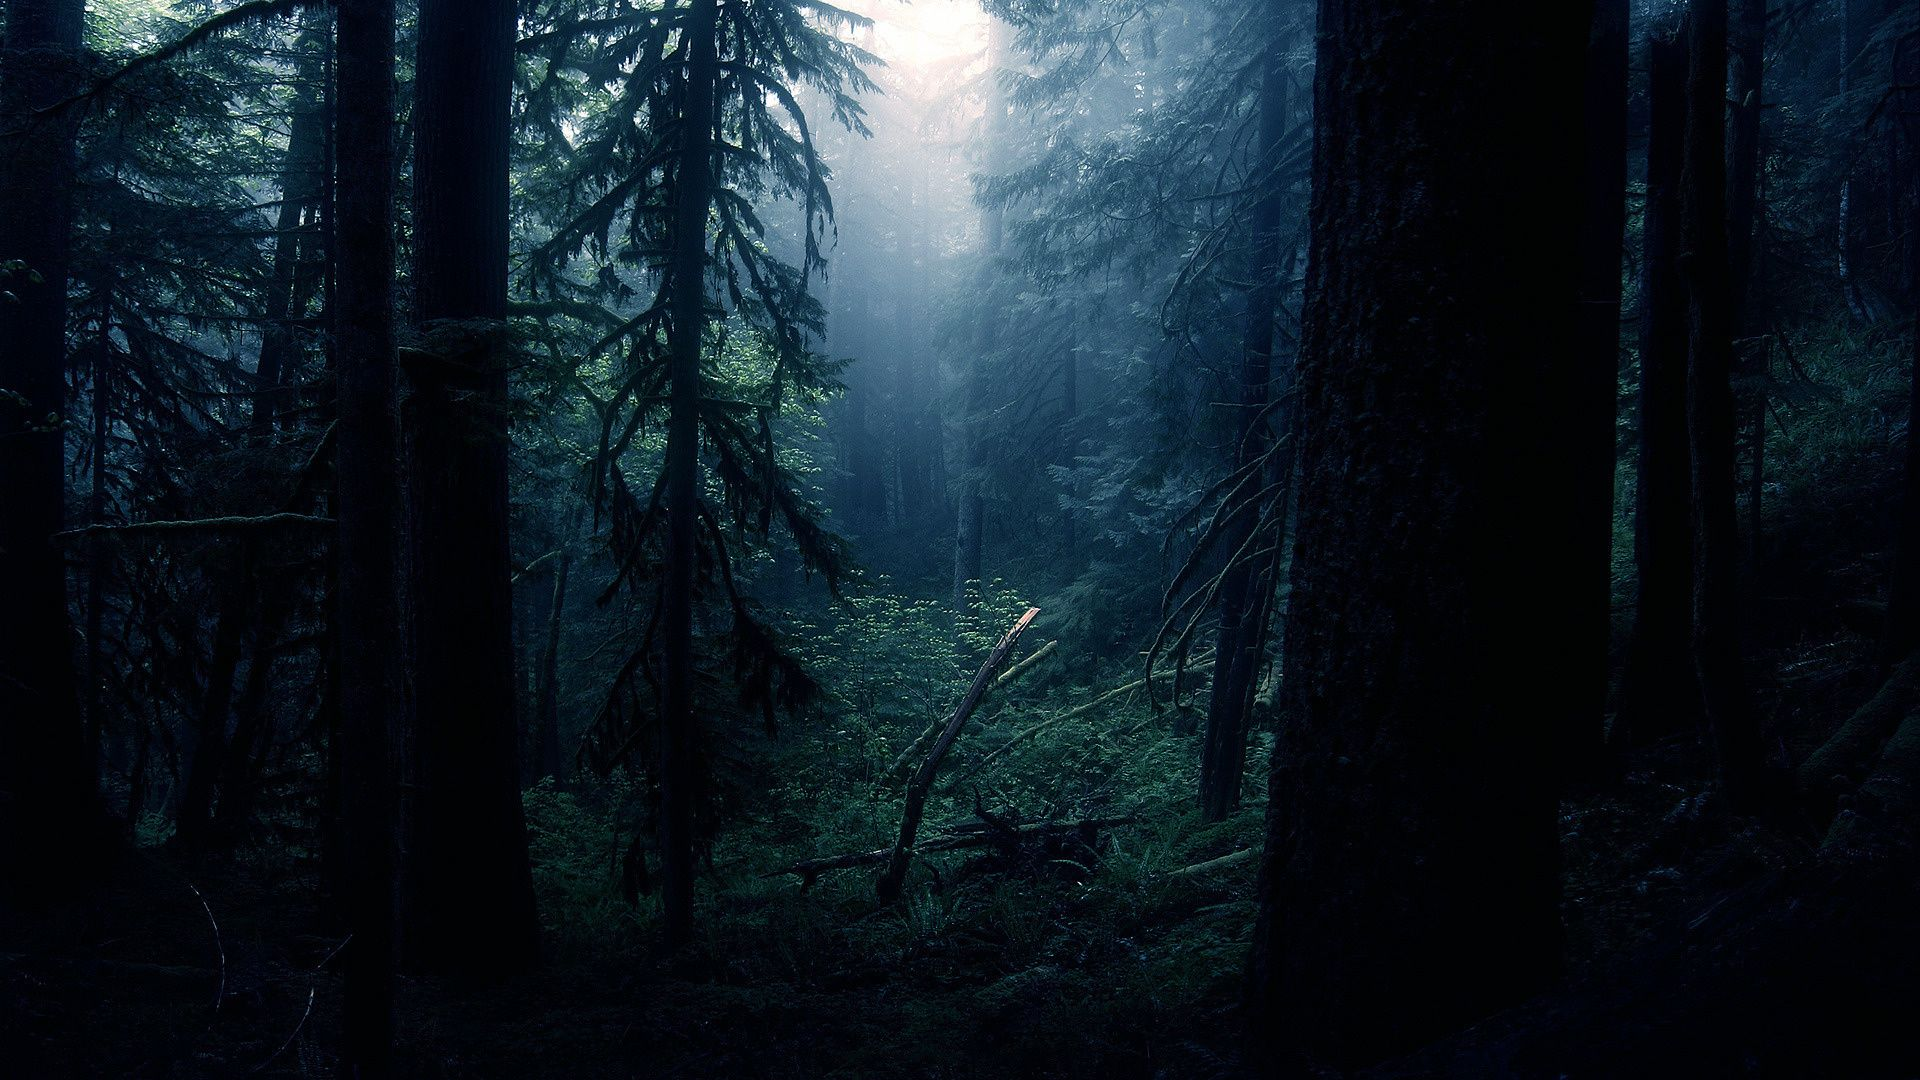 Dark Forest Wallpapers Images | Natures Wallpapers ...